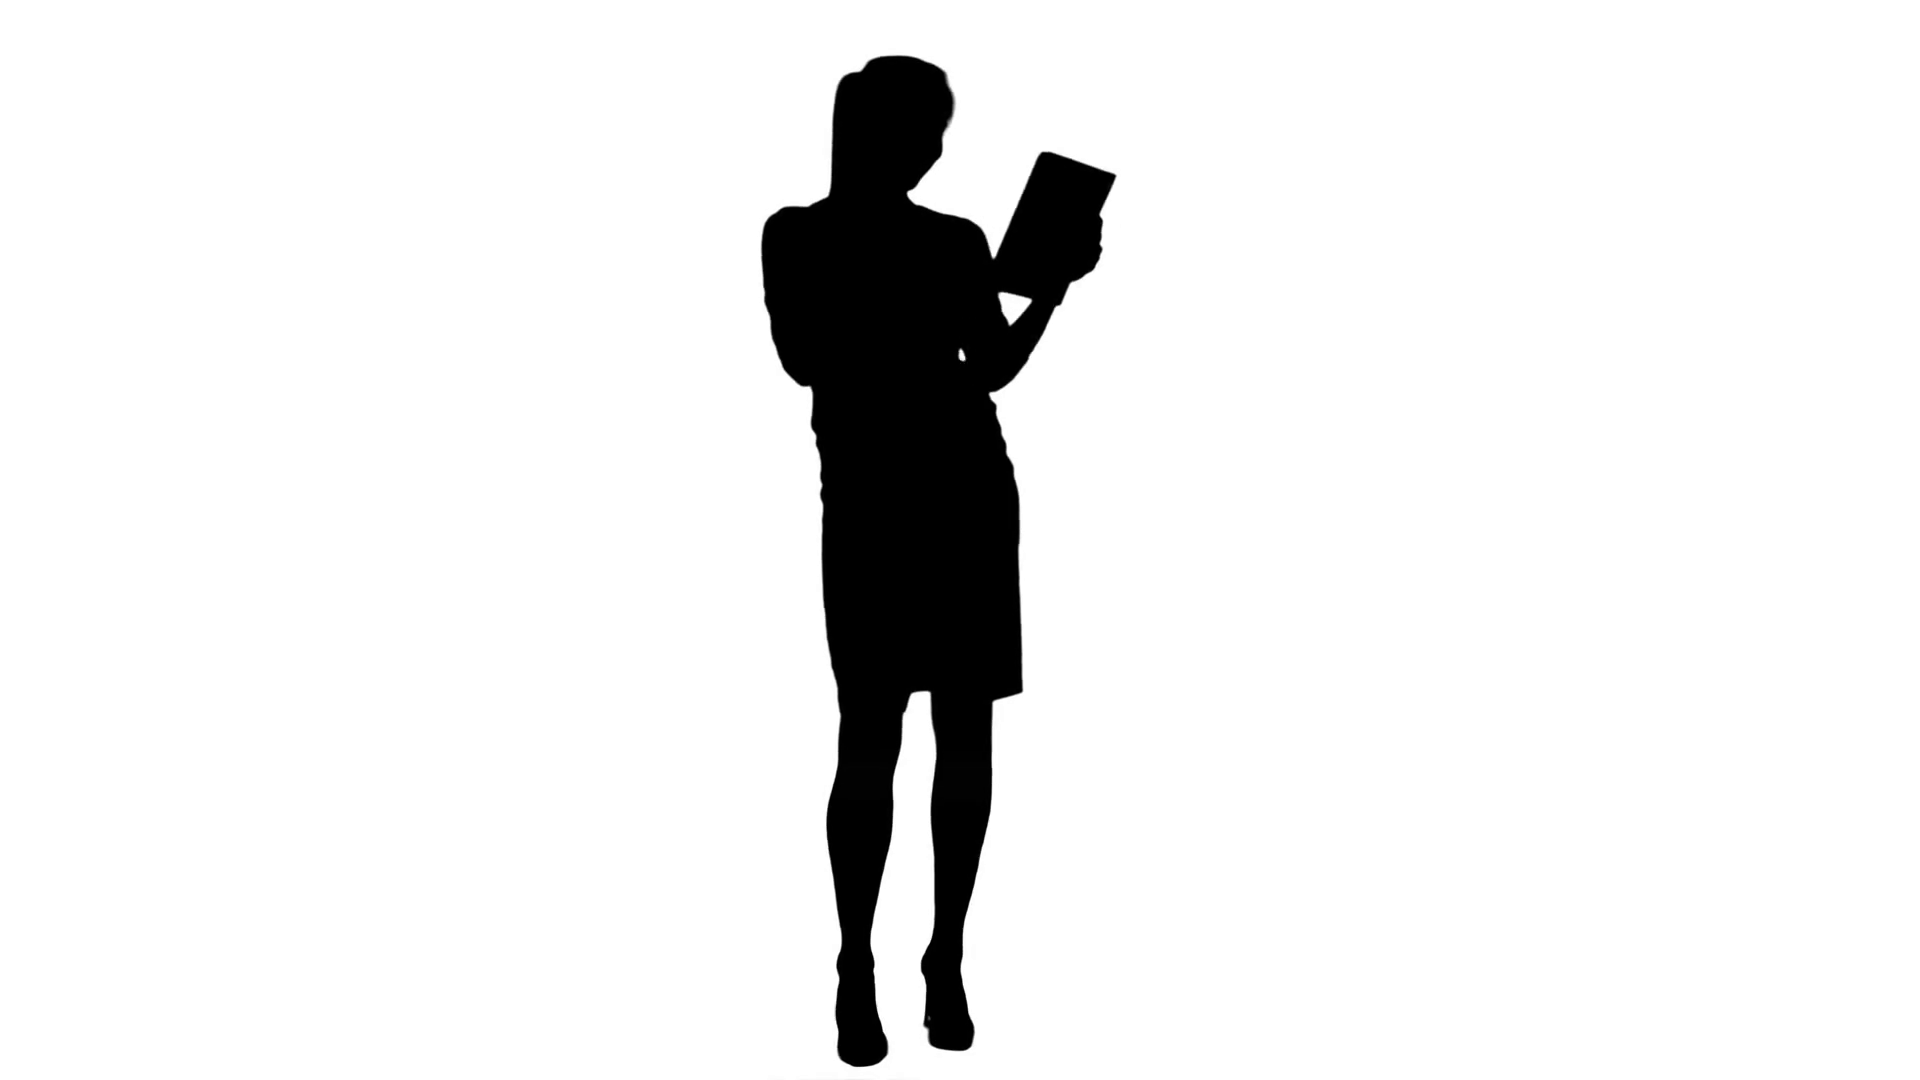 business woman silhouette fake it until you make it woman silhouette silhouette business silhouette woman